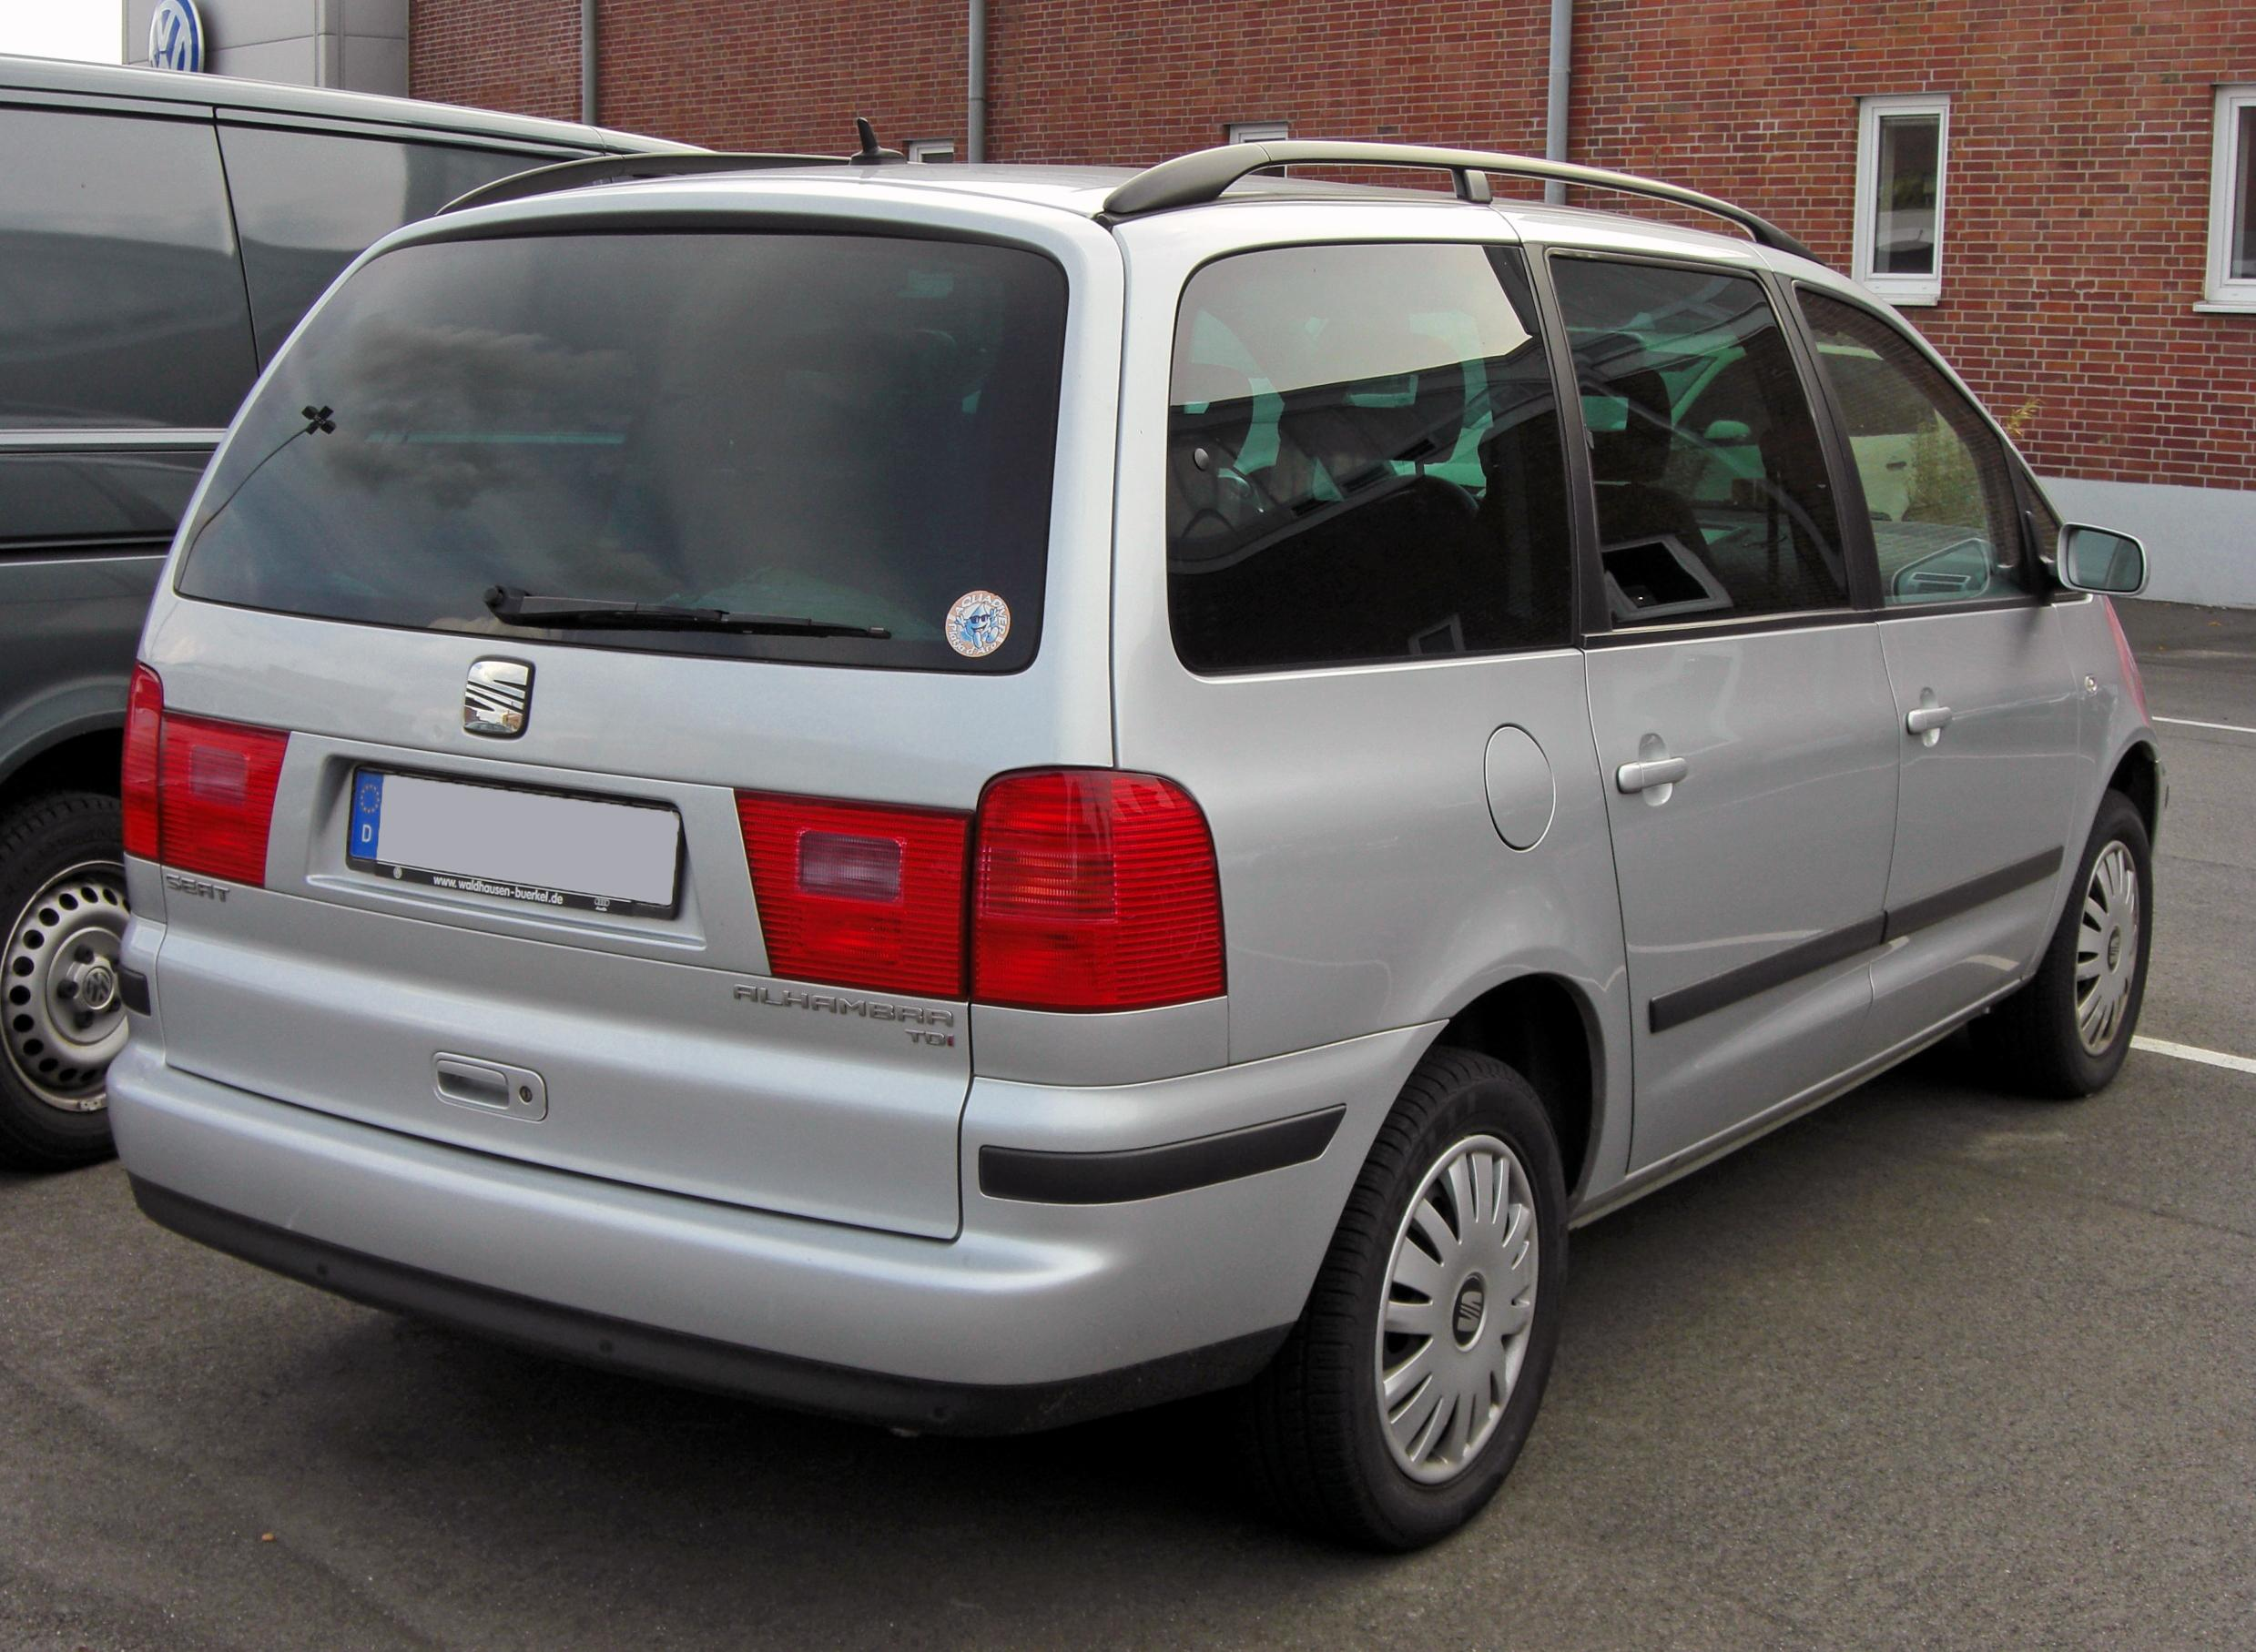 volkswagen sharan (7m) 2007 wallpaper #12